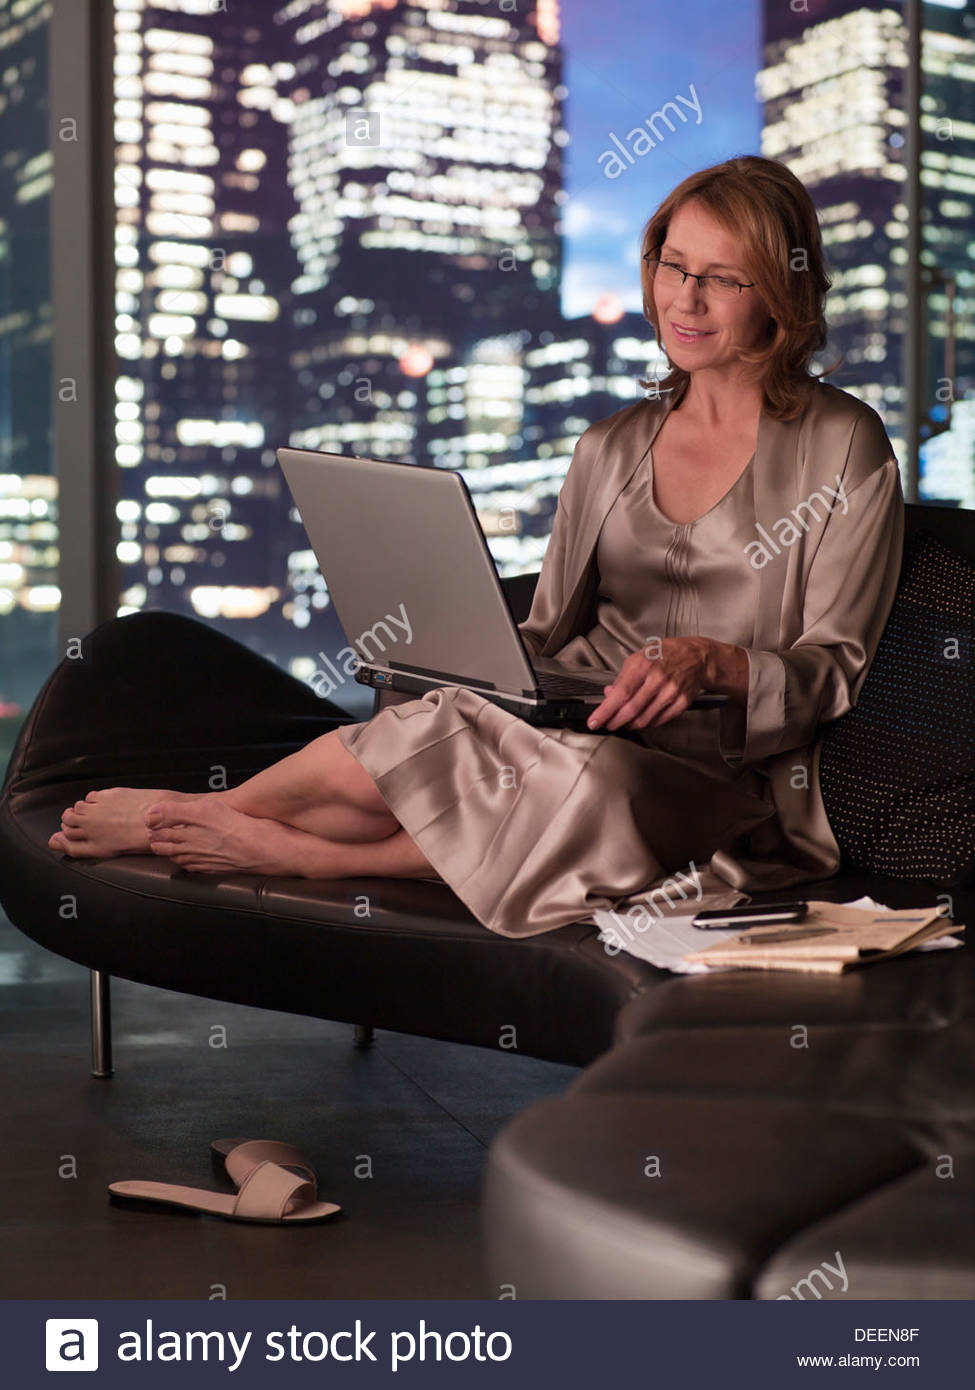 Woman in nightgown using laptop at night Stock Photo